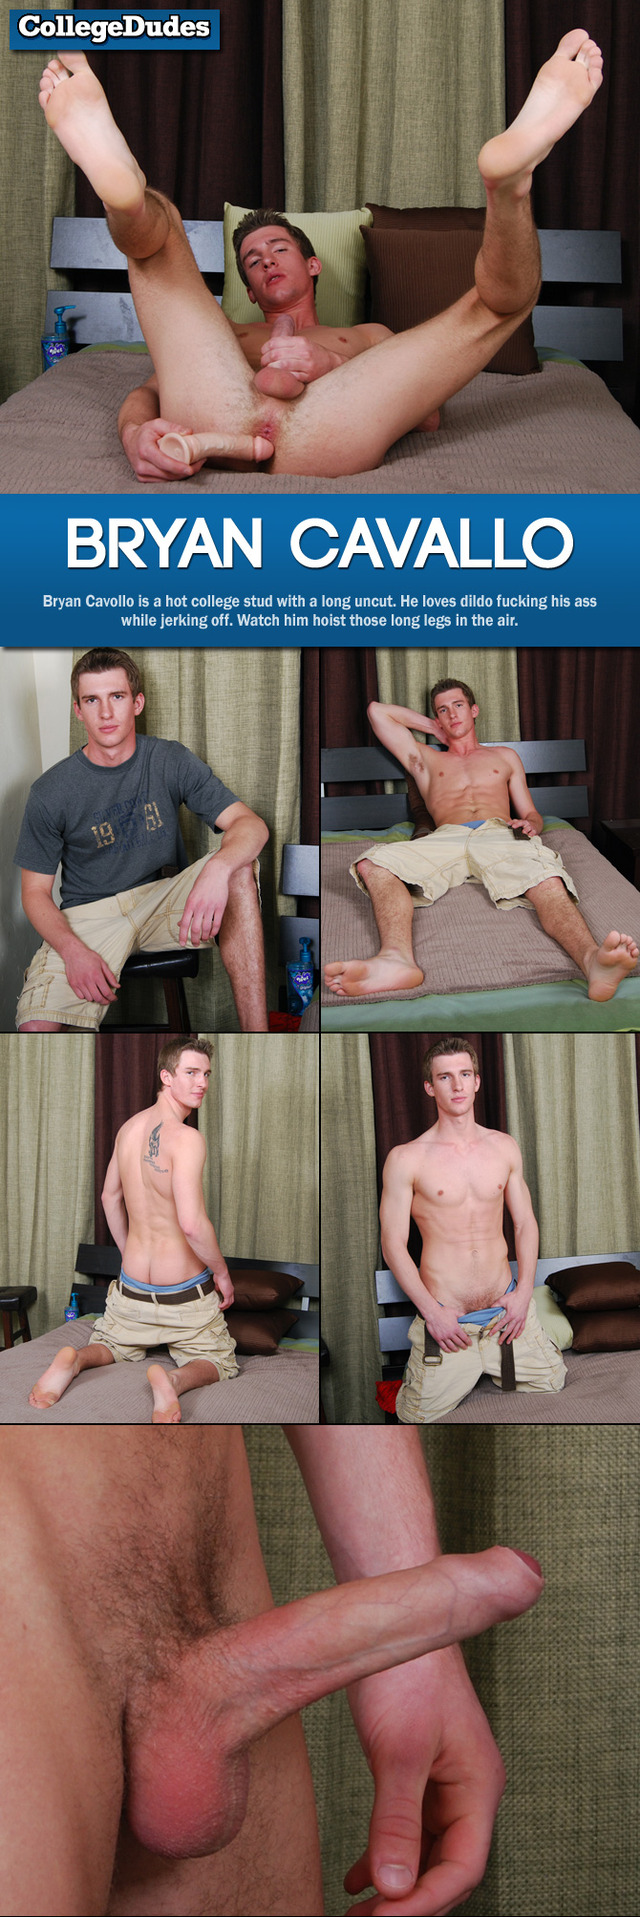 Bryan Cavallo naked fucking collegedudes bryan cavallo collages session dildo